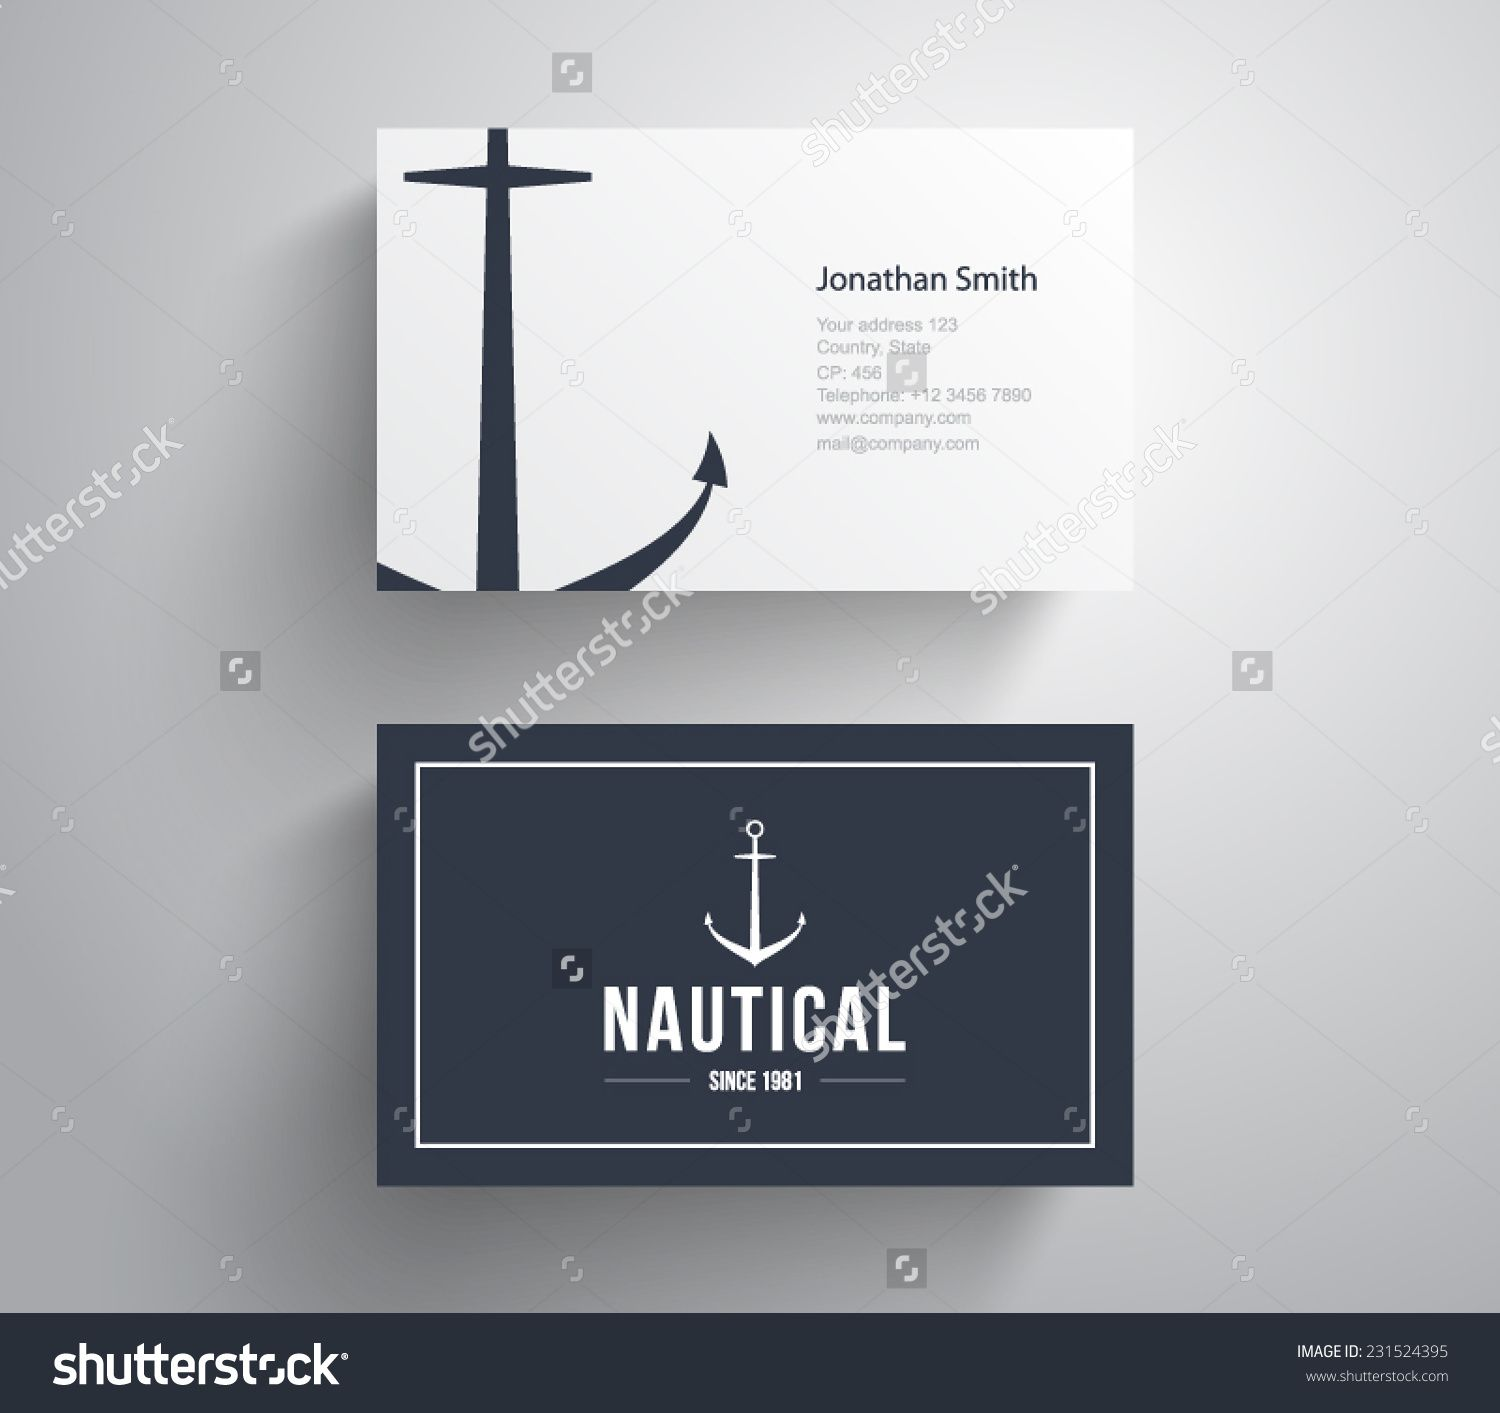 stock vector business card with retro vintage logo marine nautical